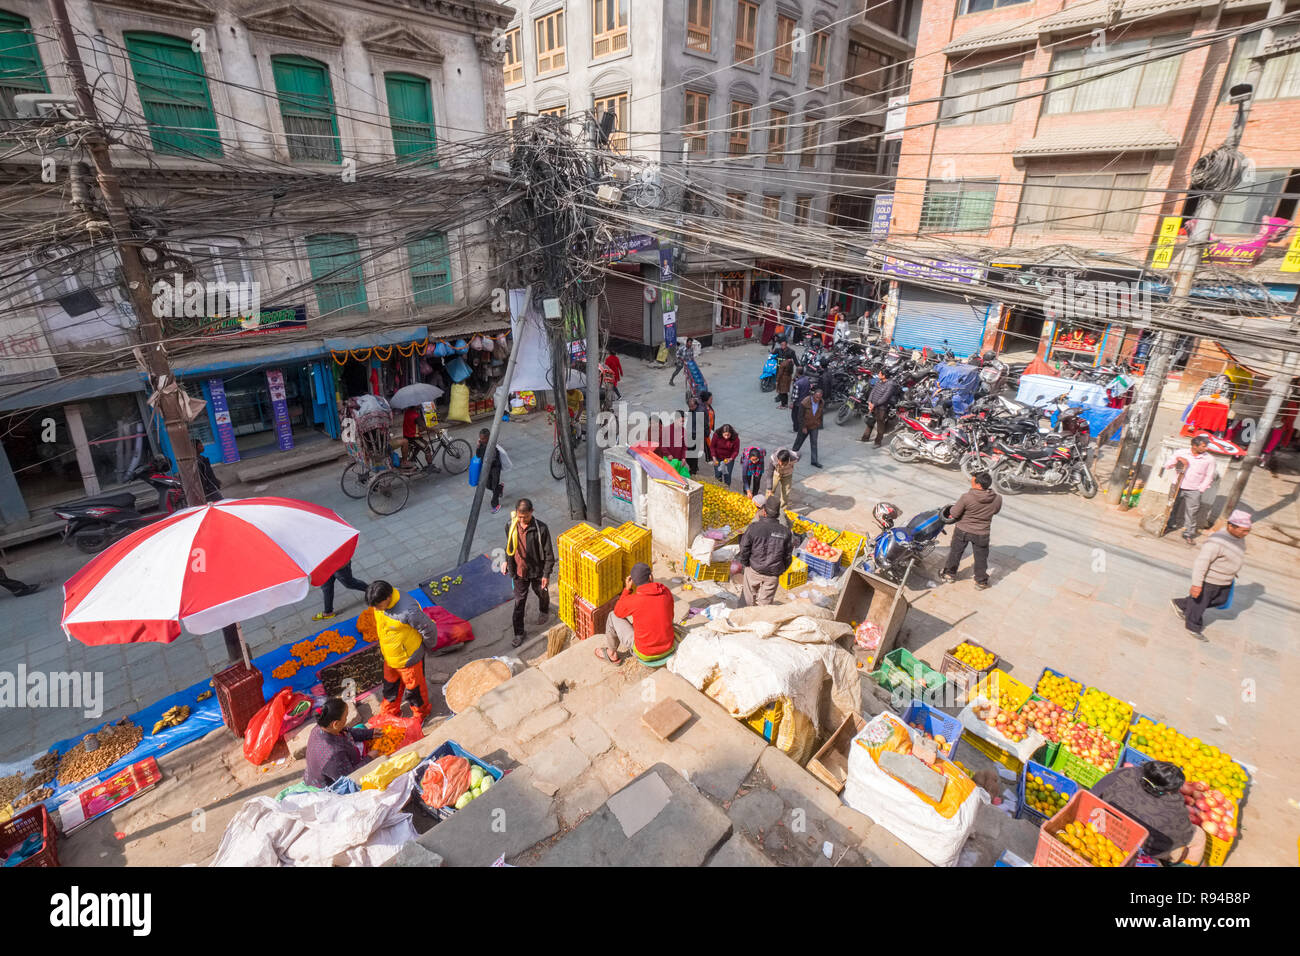 Busy crossroads in the old city Kathmandu, Nepal with a mass of overhead cables - Stock Image